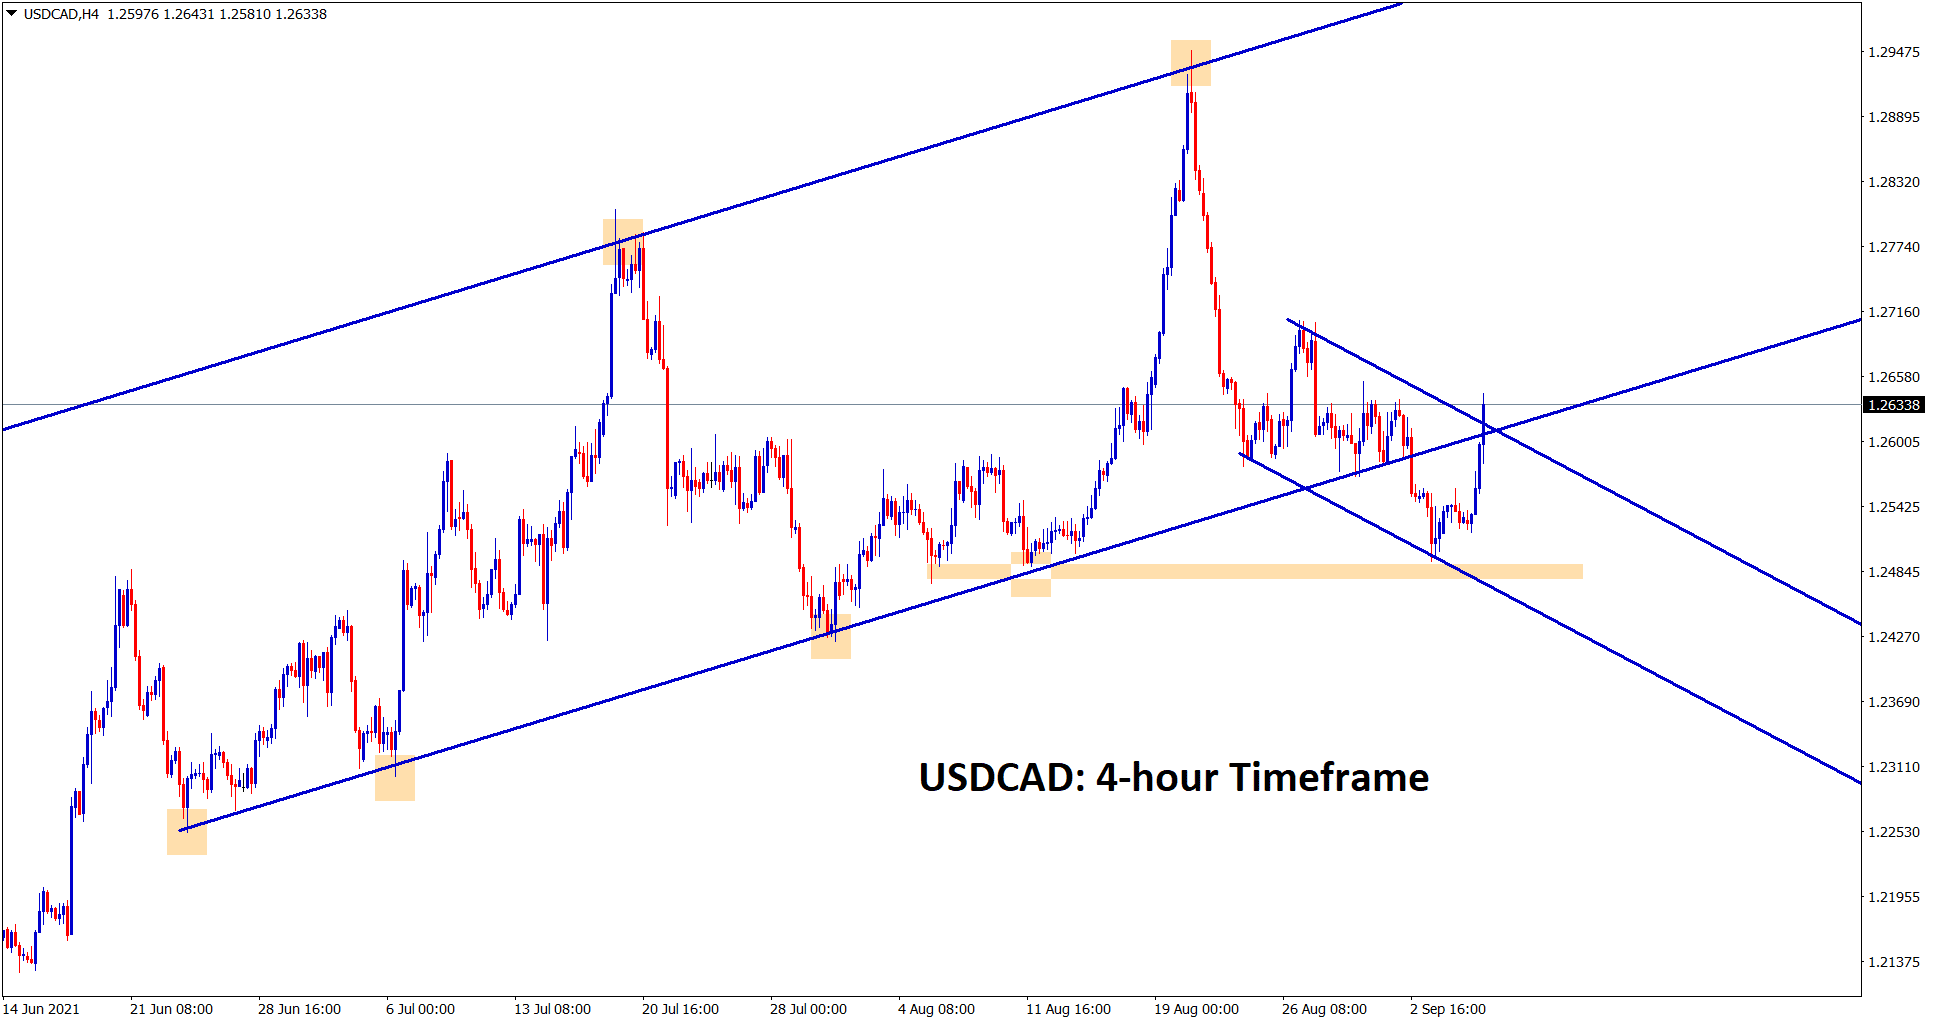 USDCAD is trying to re enter into the major uptrend line again and trying to break the minor descending channel